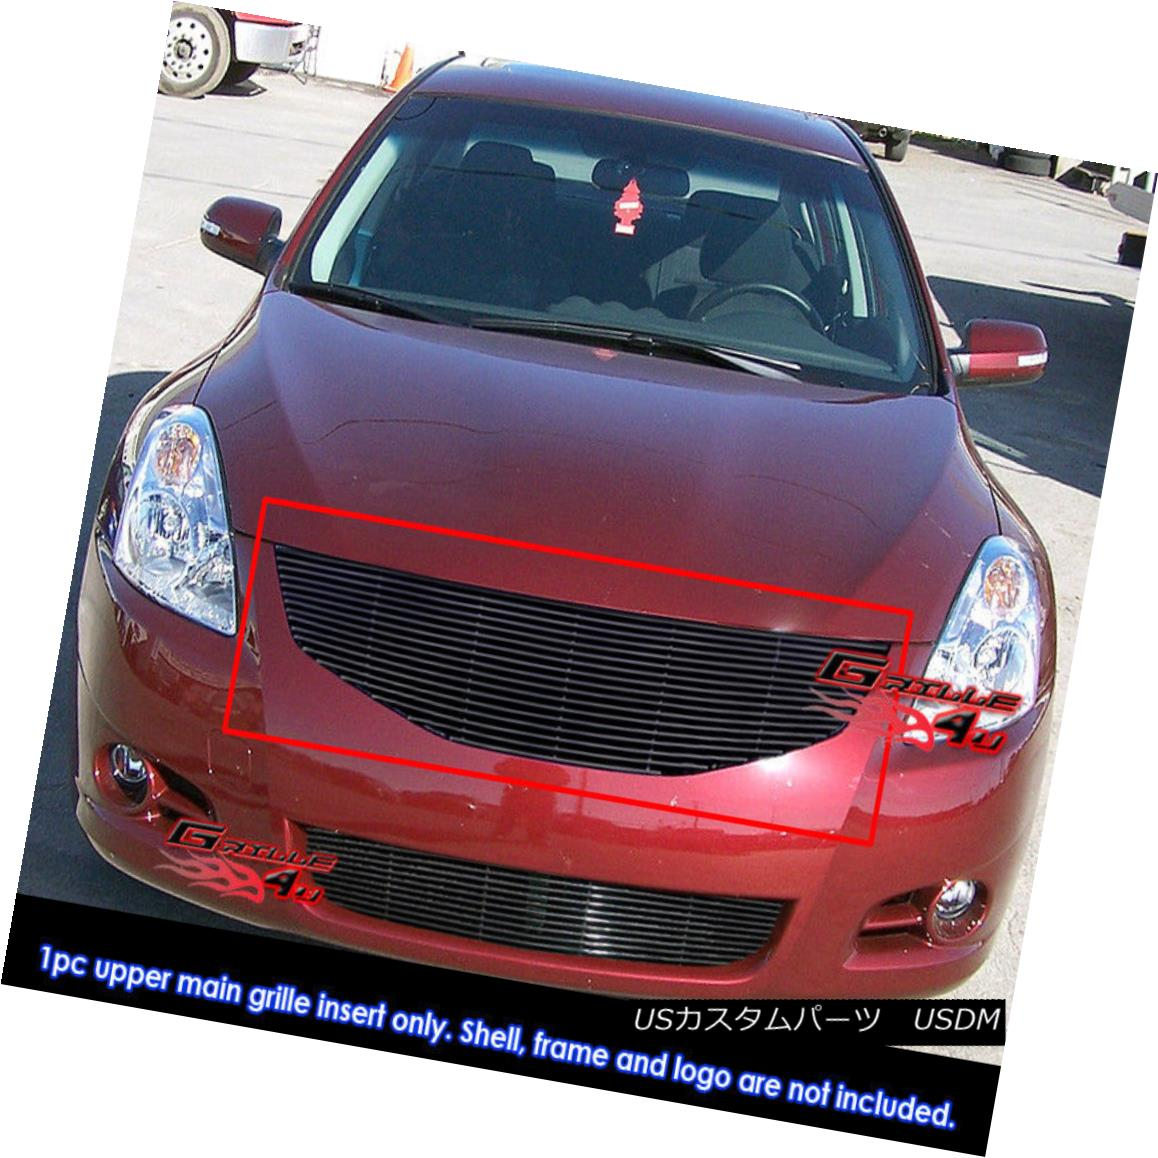 グリル Fits 2011-2012 Nissan Altima Sedan Black Billet Grille Grill Insert 2011-2012 Nissan Altima Sedan Black Billetグリルグリルインサート